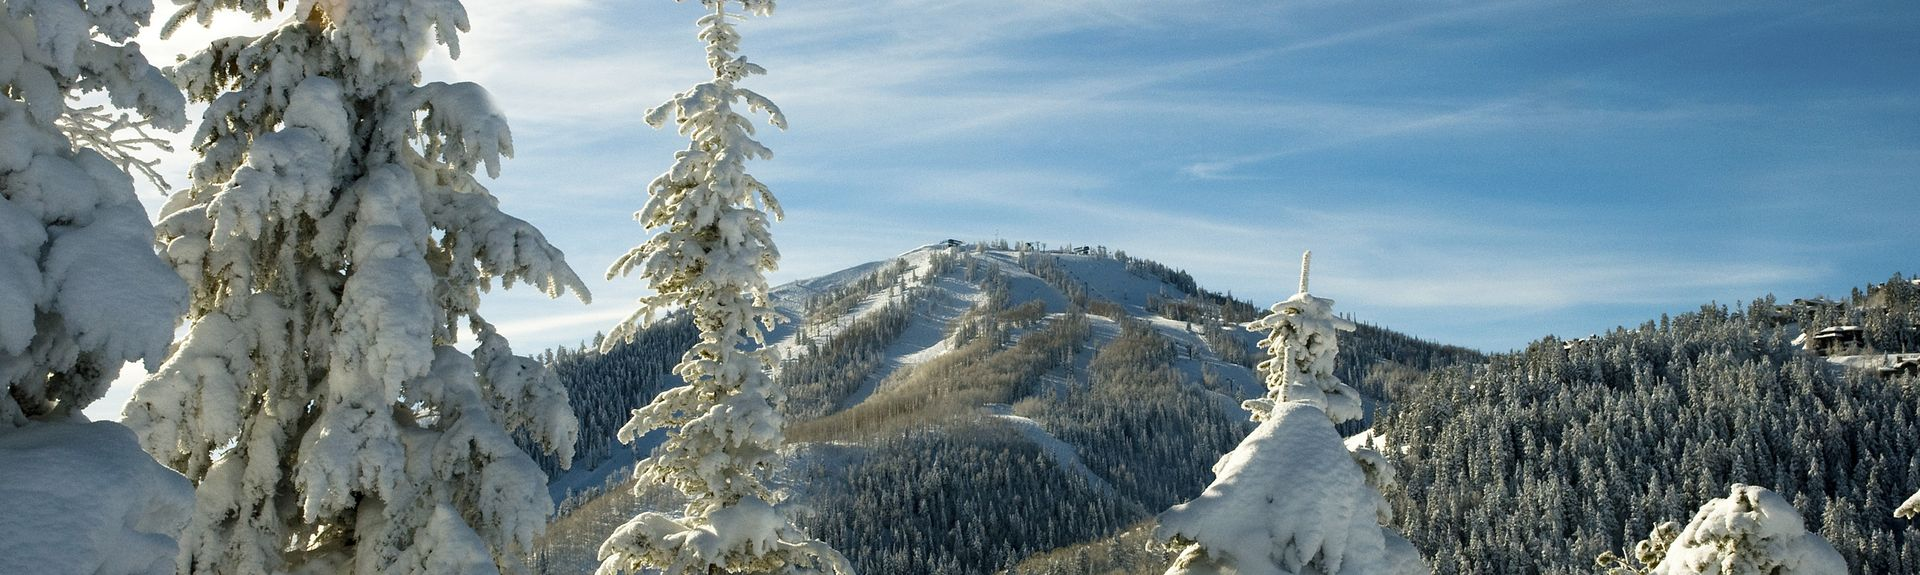 Deer Valley, Park City, Utah, United States of America